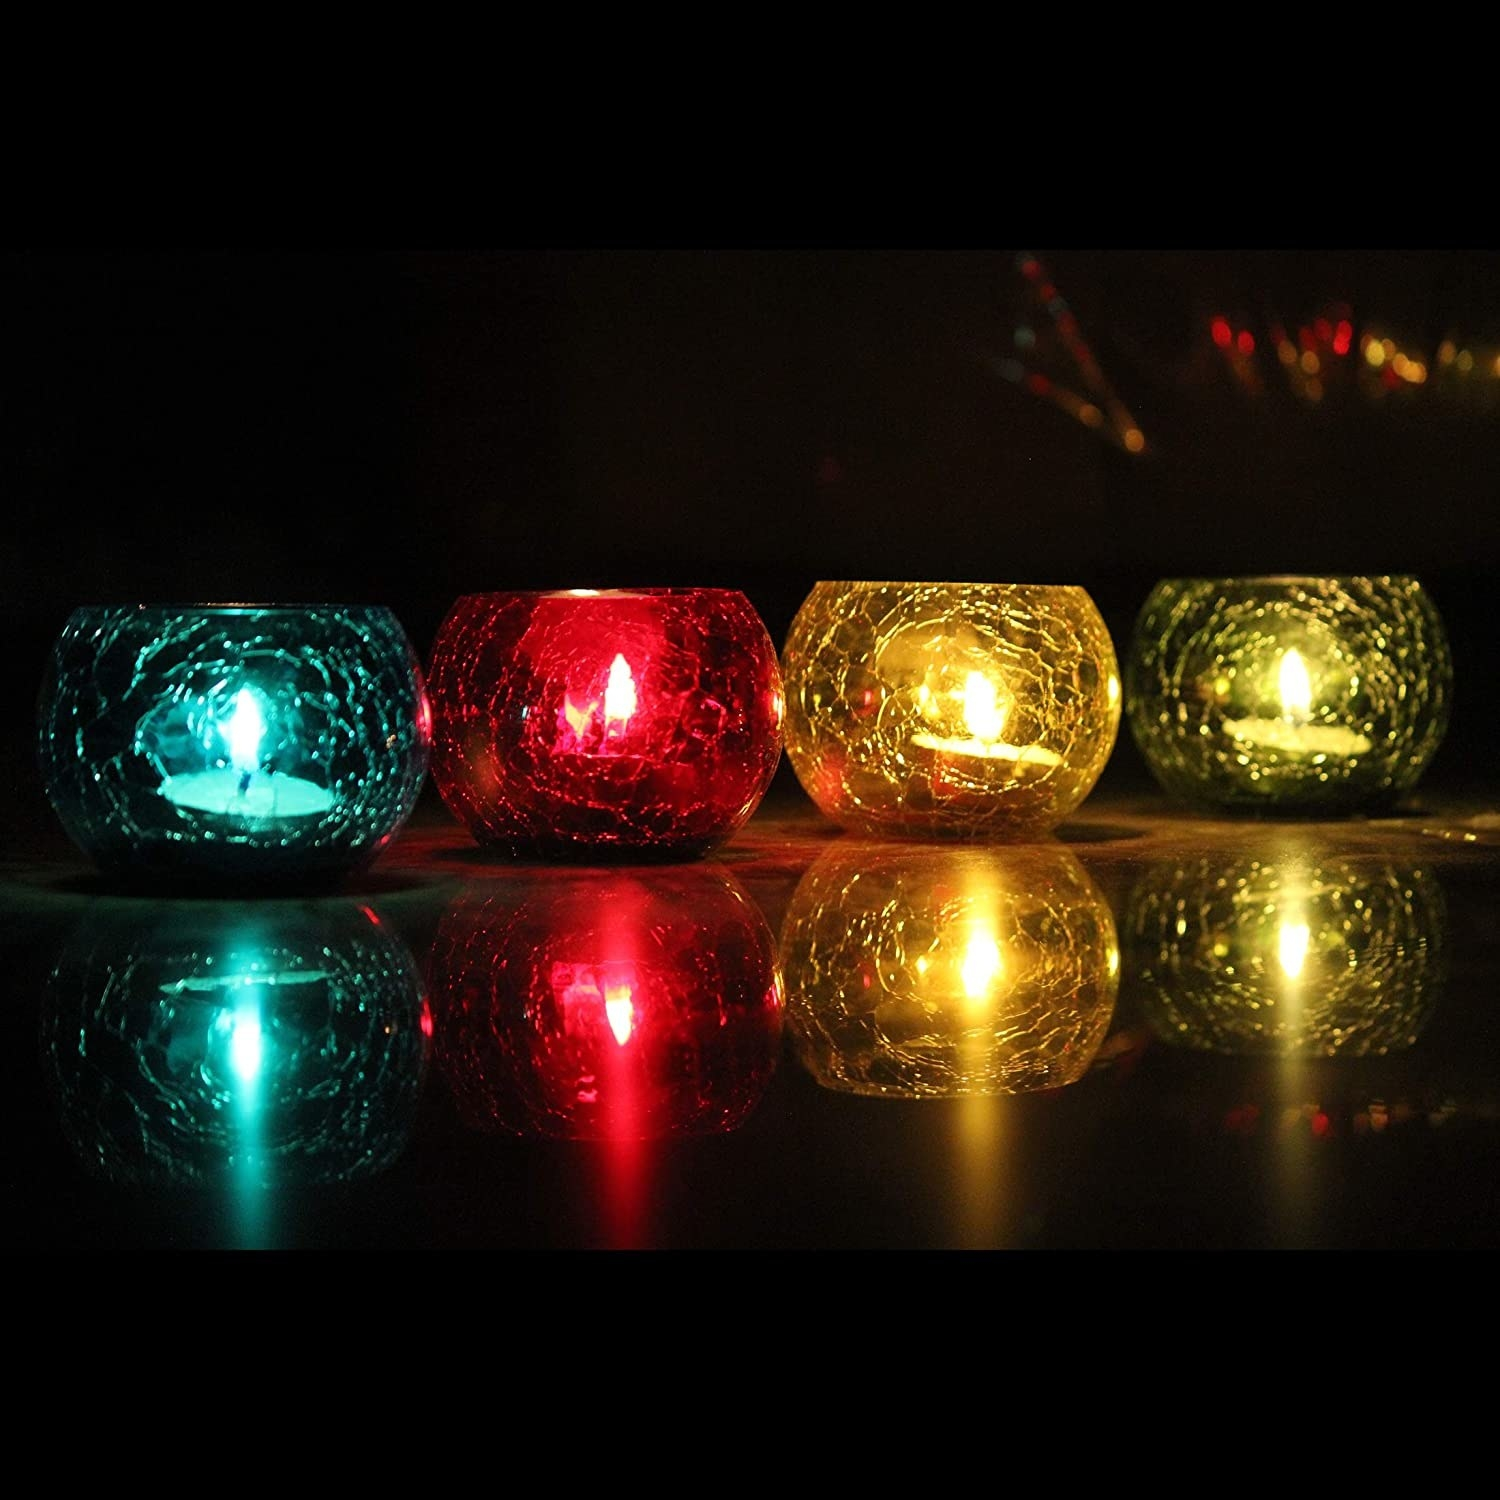 Cracked glass candle holders in blue, red, yellow, and green.